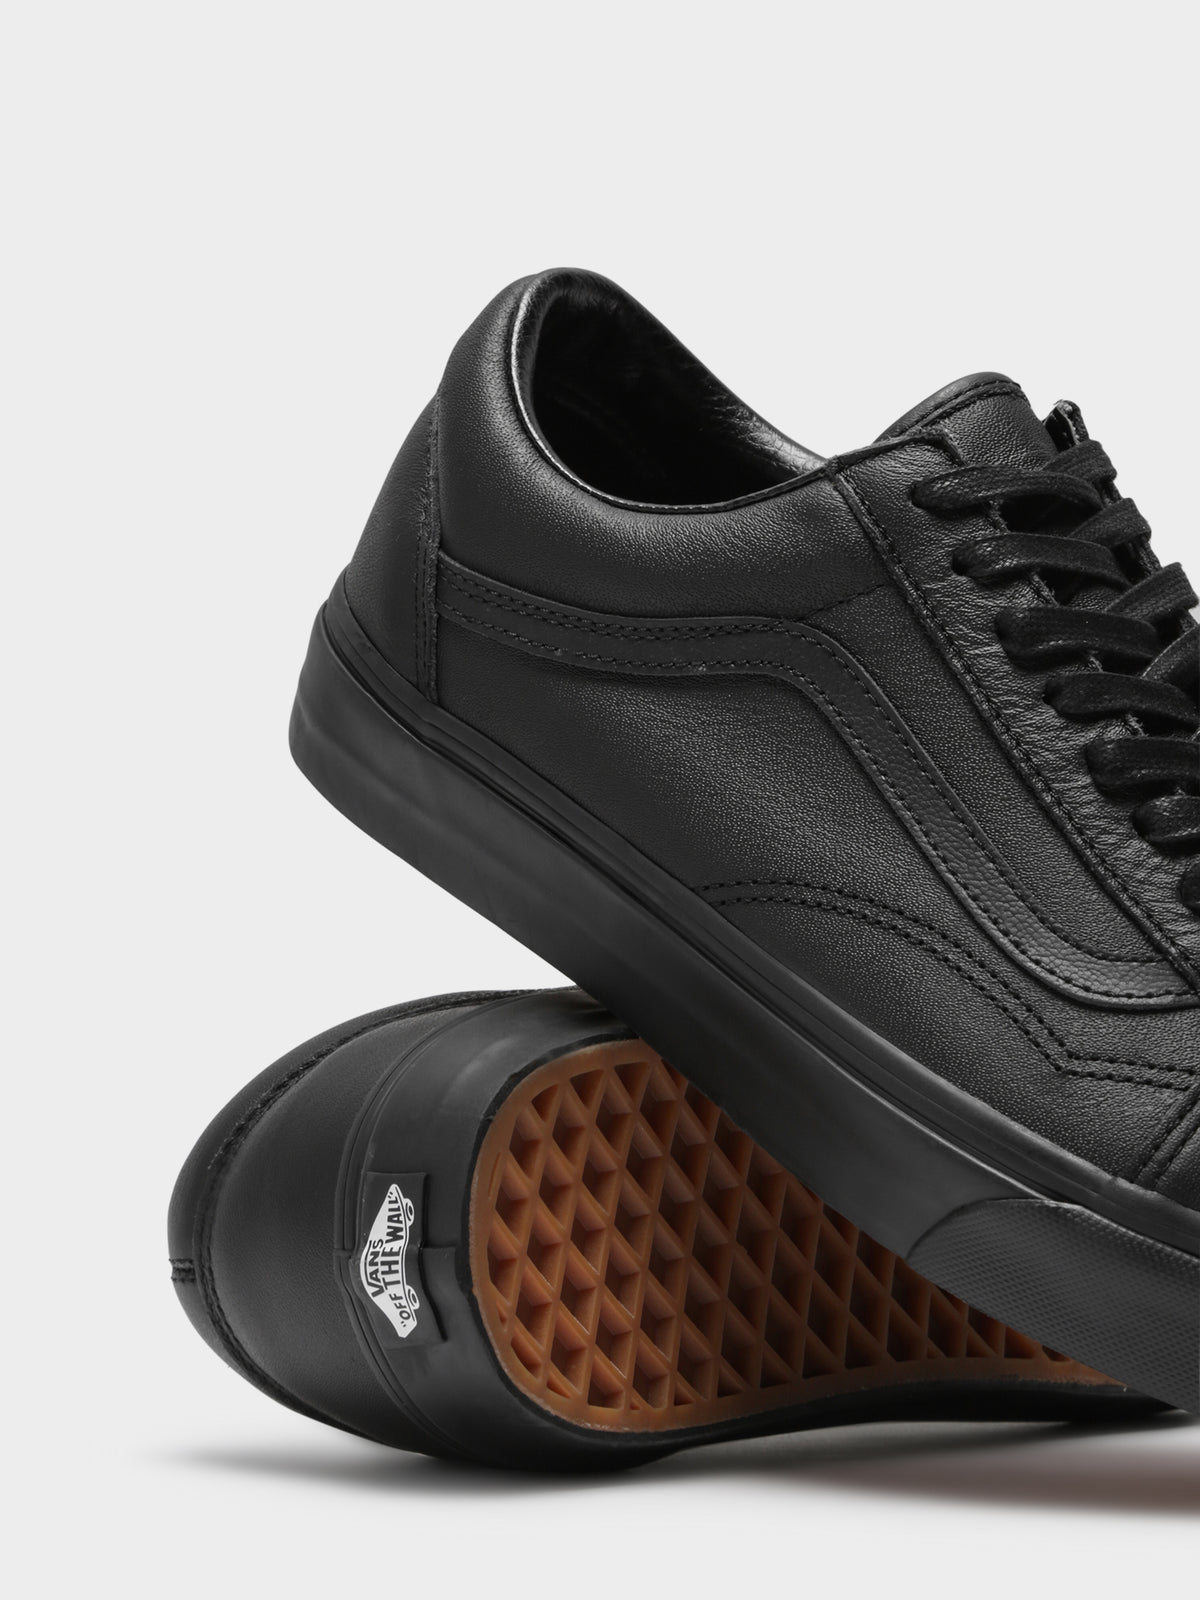 Unisex Old Skool Leather Sneakers in Triple Black